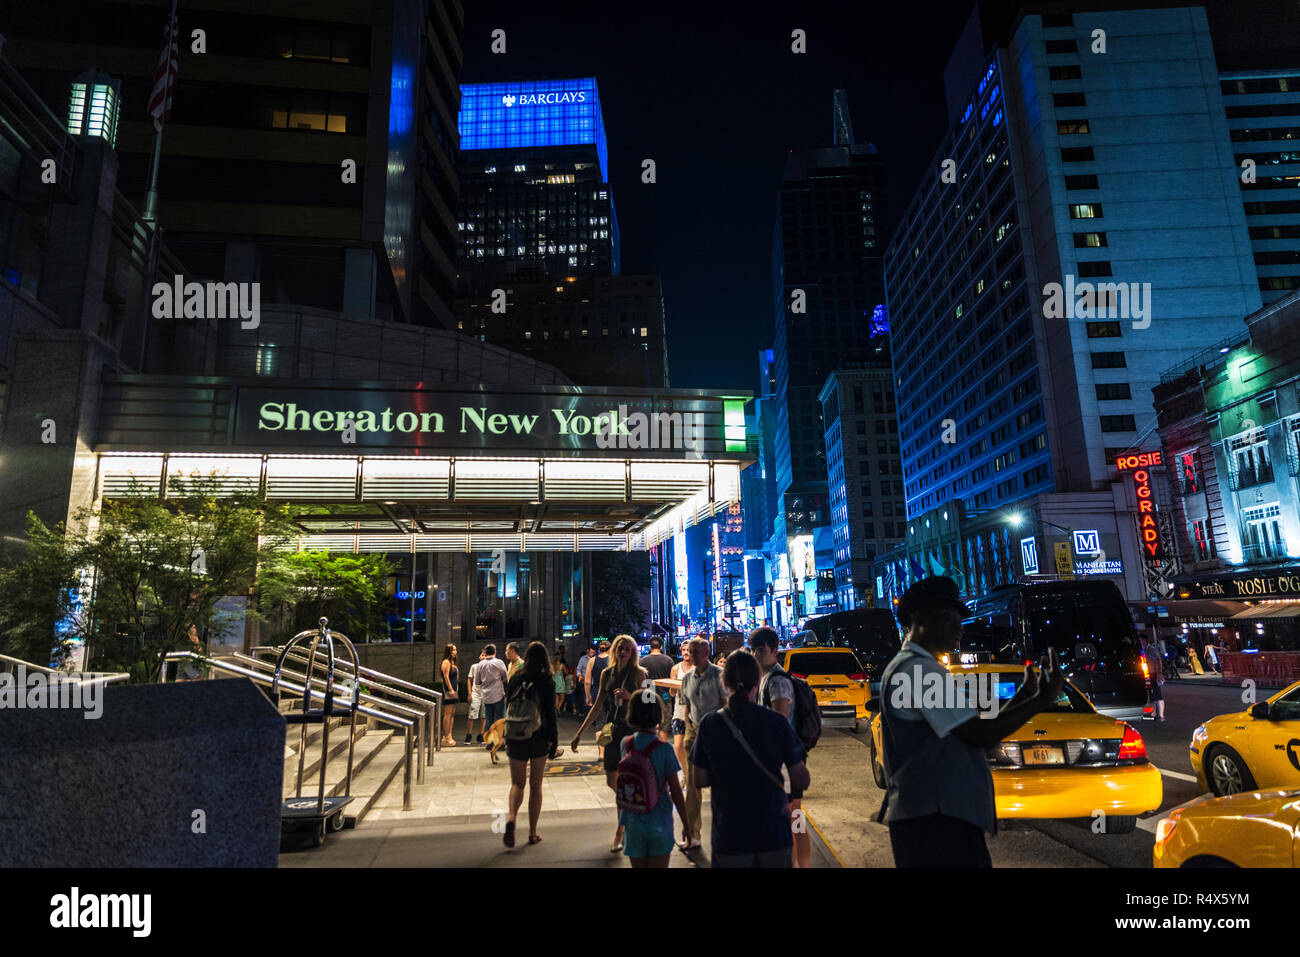 New York City, USA - July 30, 2018: Sheraton New York Times Square Hotel at night on Seventh Avenue (7th Avenue) next to Times Square with people arou - Stock Image